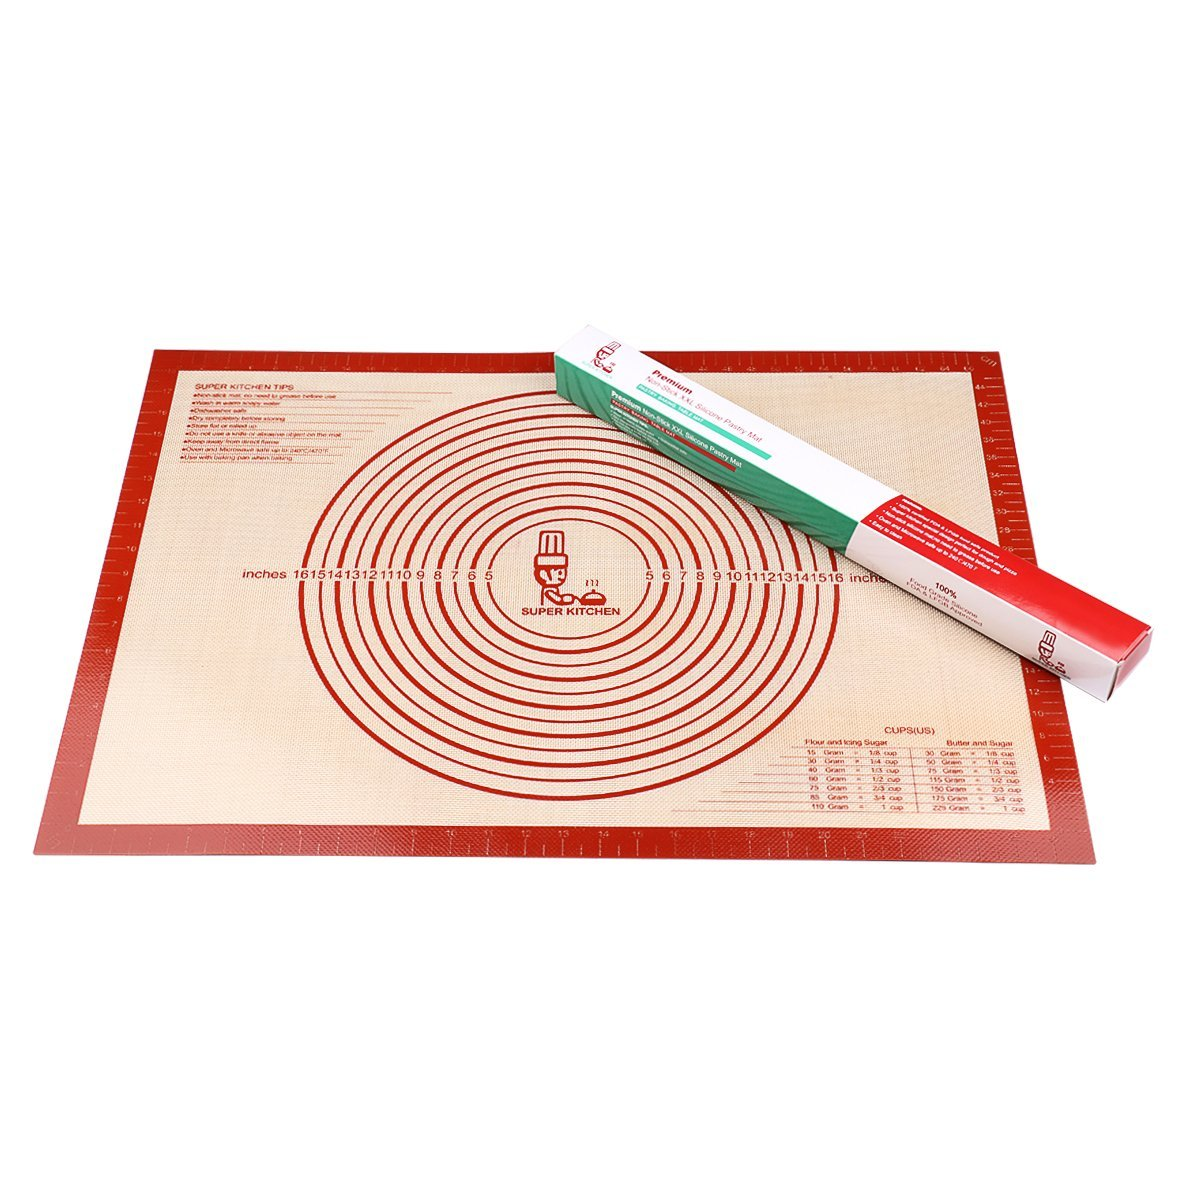 Non-slip Silicone Pastry Mat Extra Large with Measurements